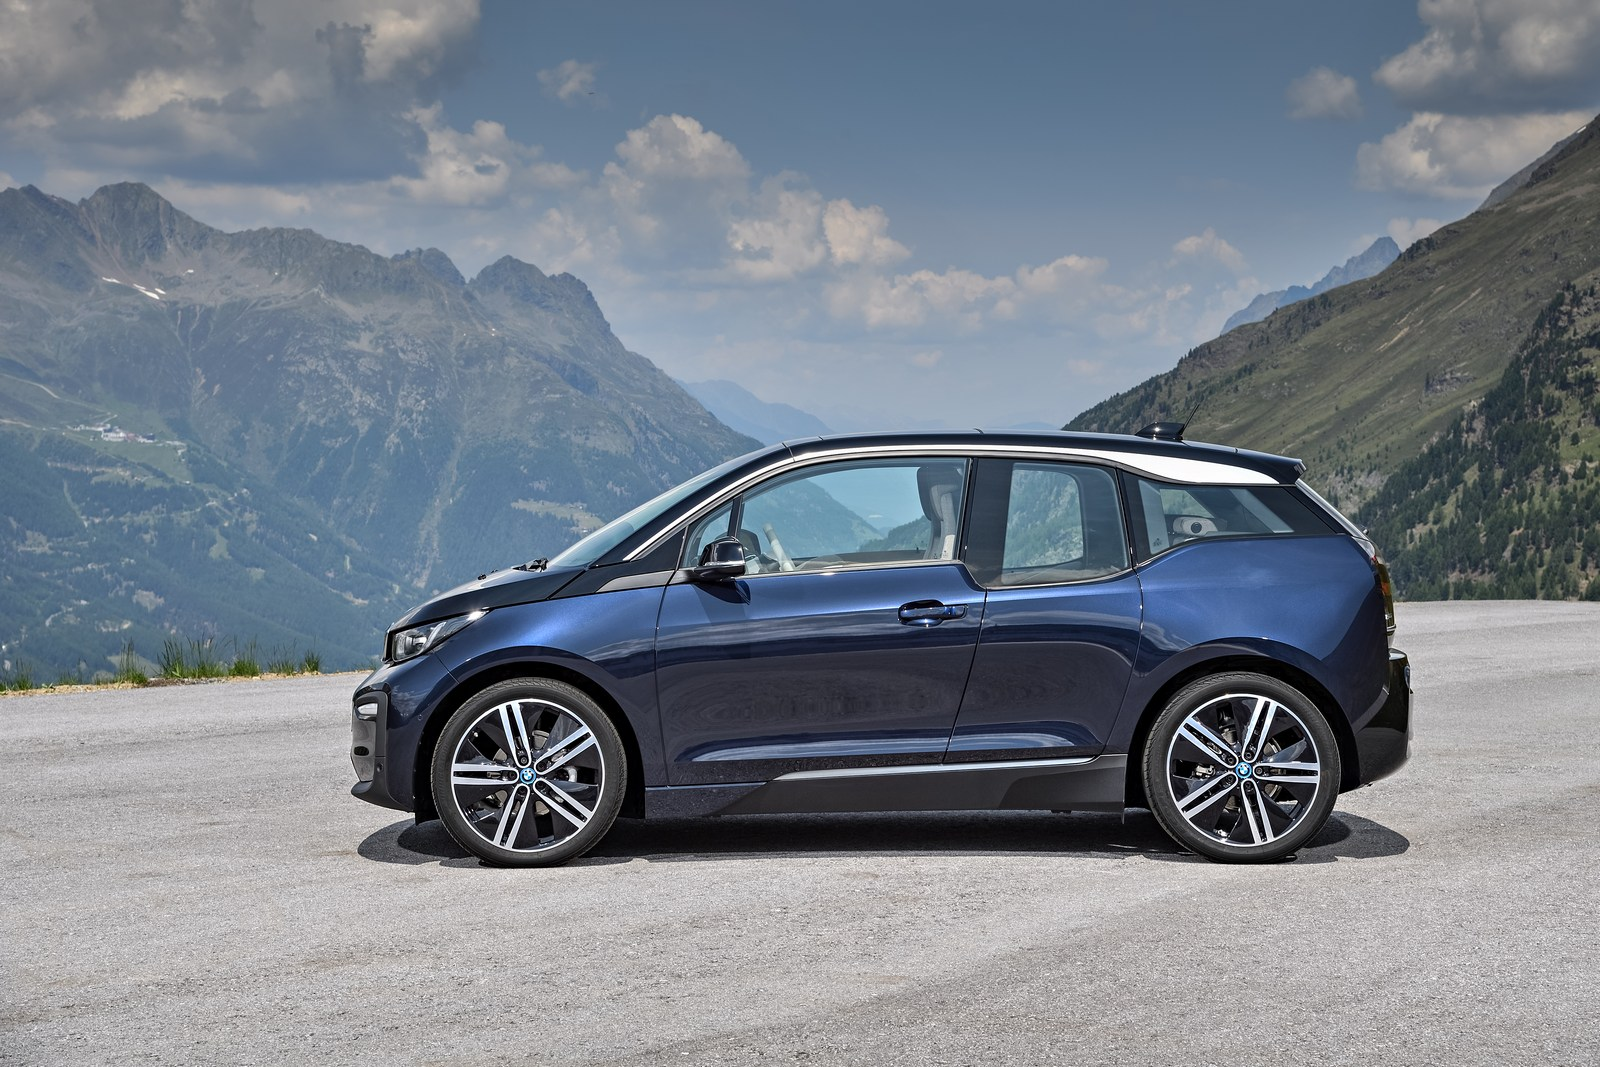 2018 Bmw I3s Debuts With Upgraded Motor Sportier Styling Carscoops